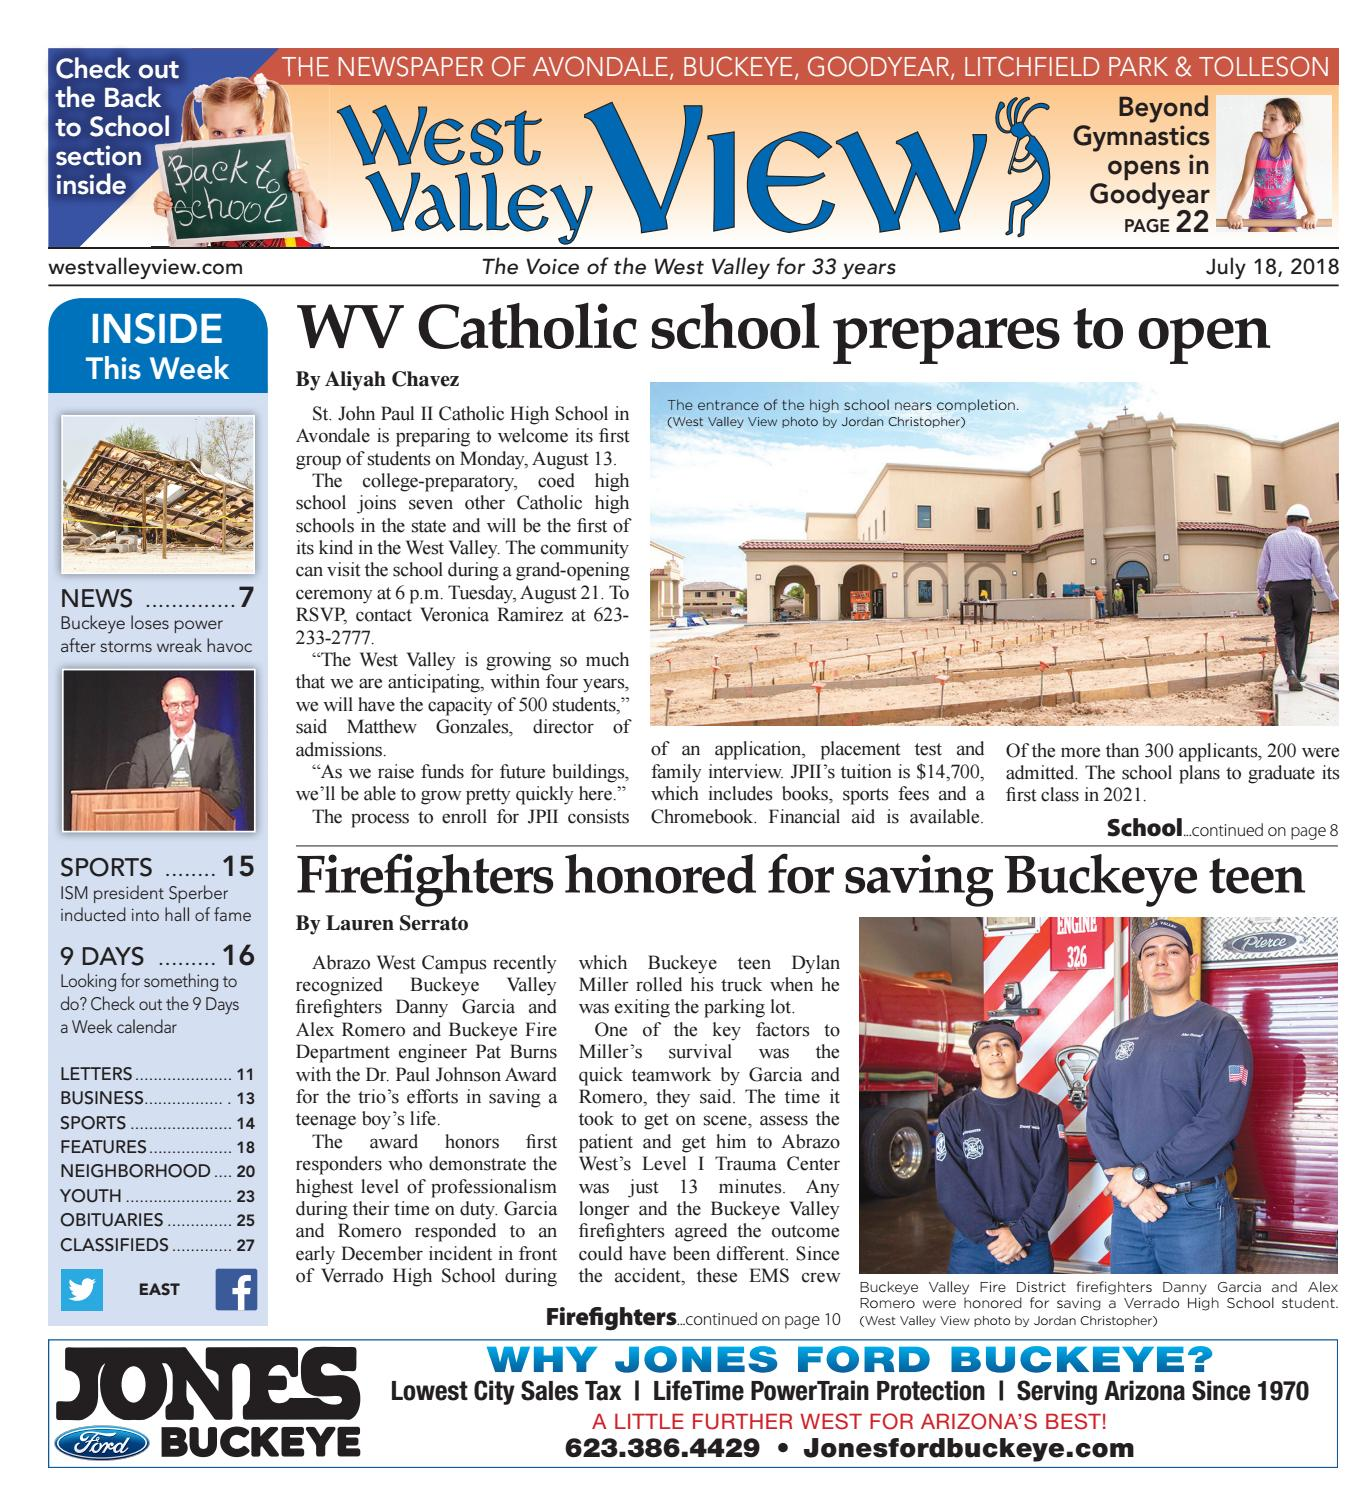 West valley view east july 18 2018 by times media group issuu fandeluxe Images